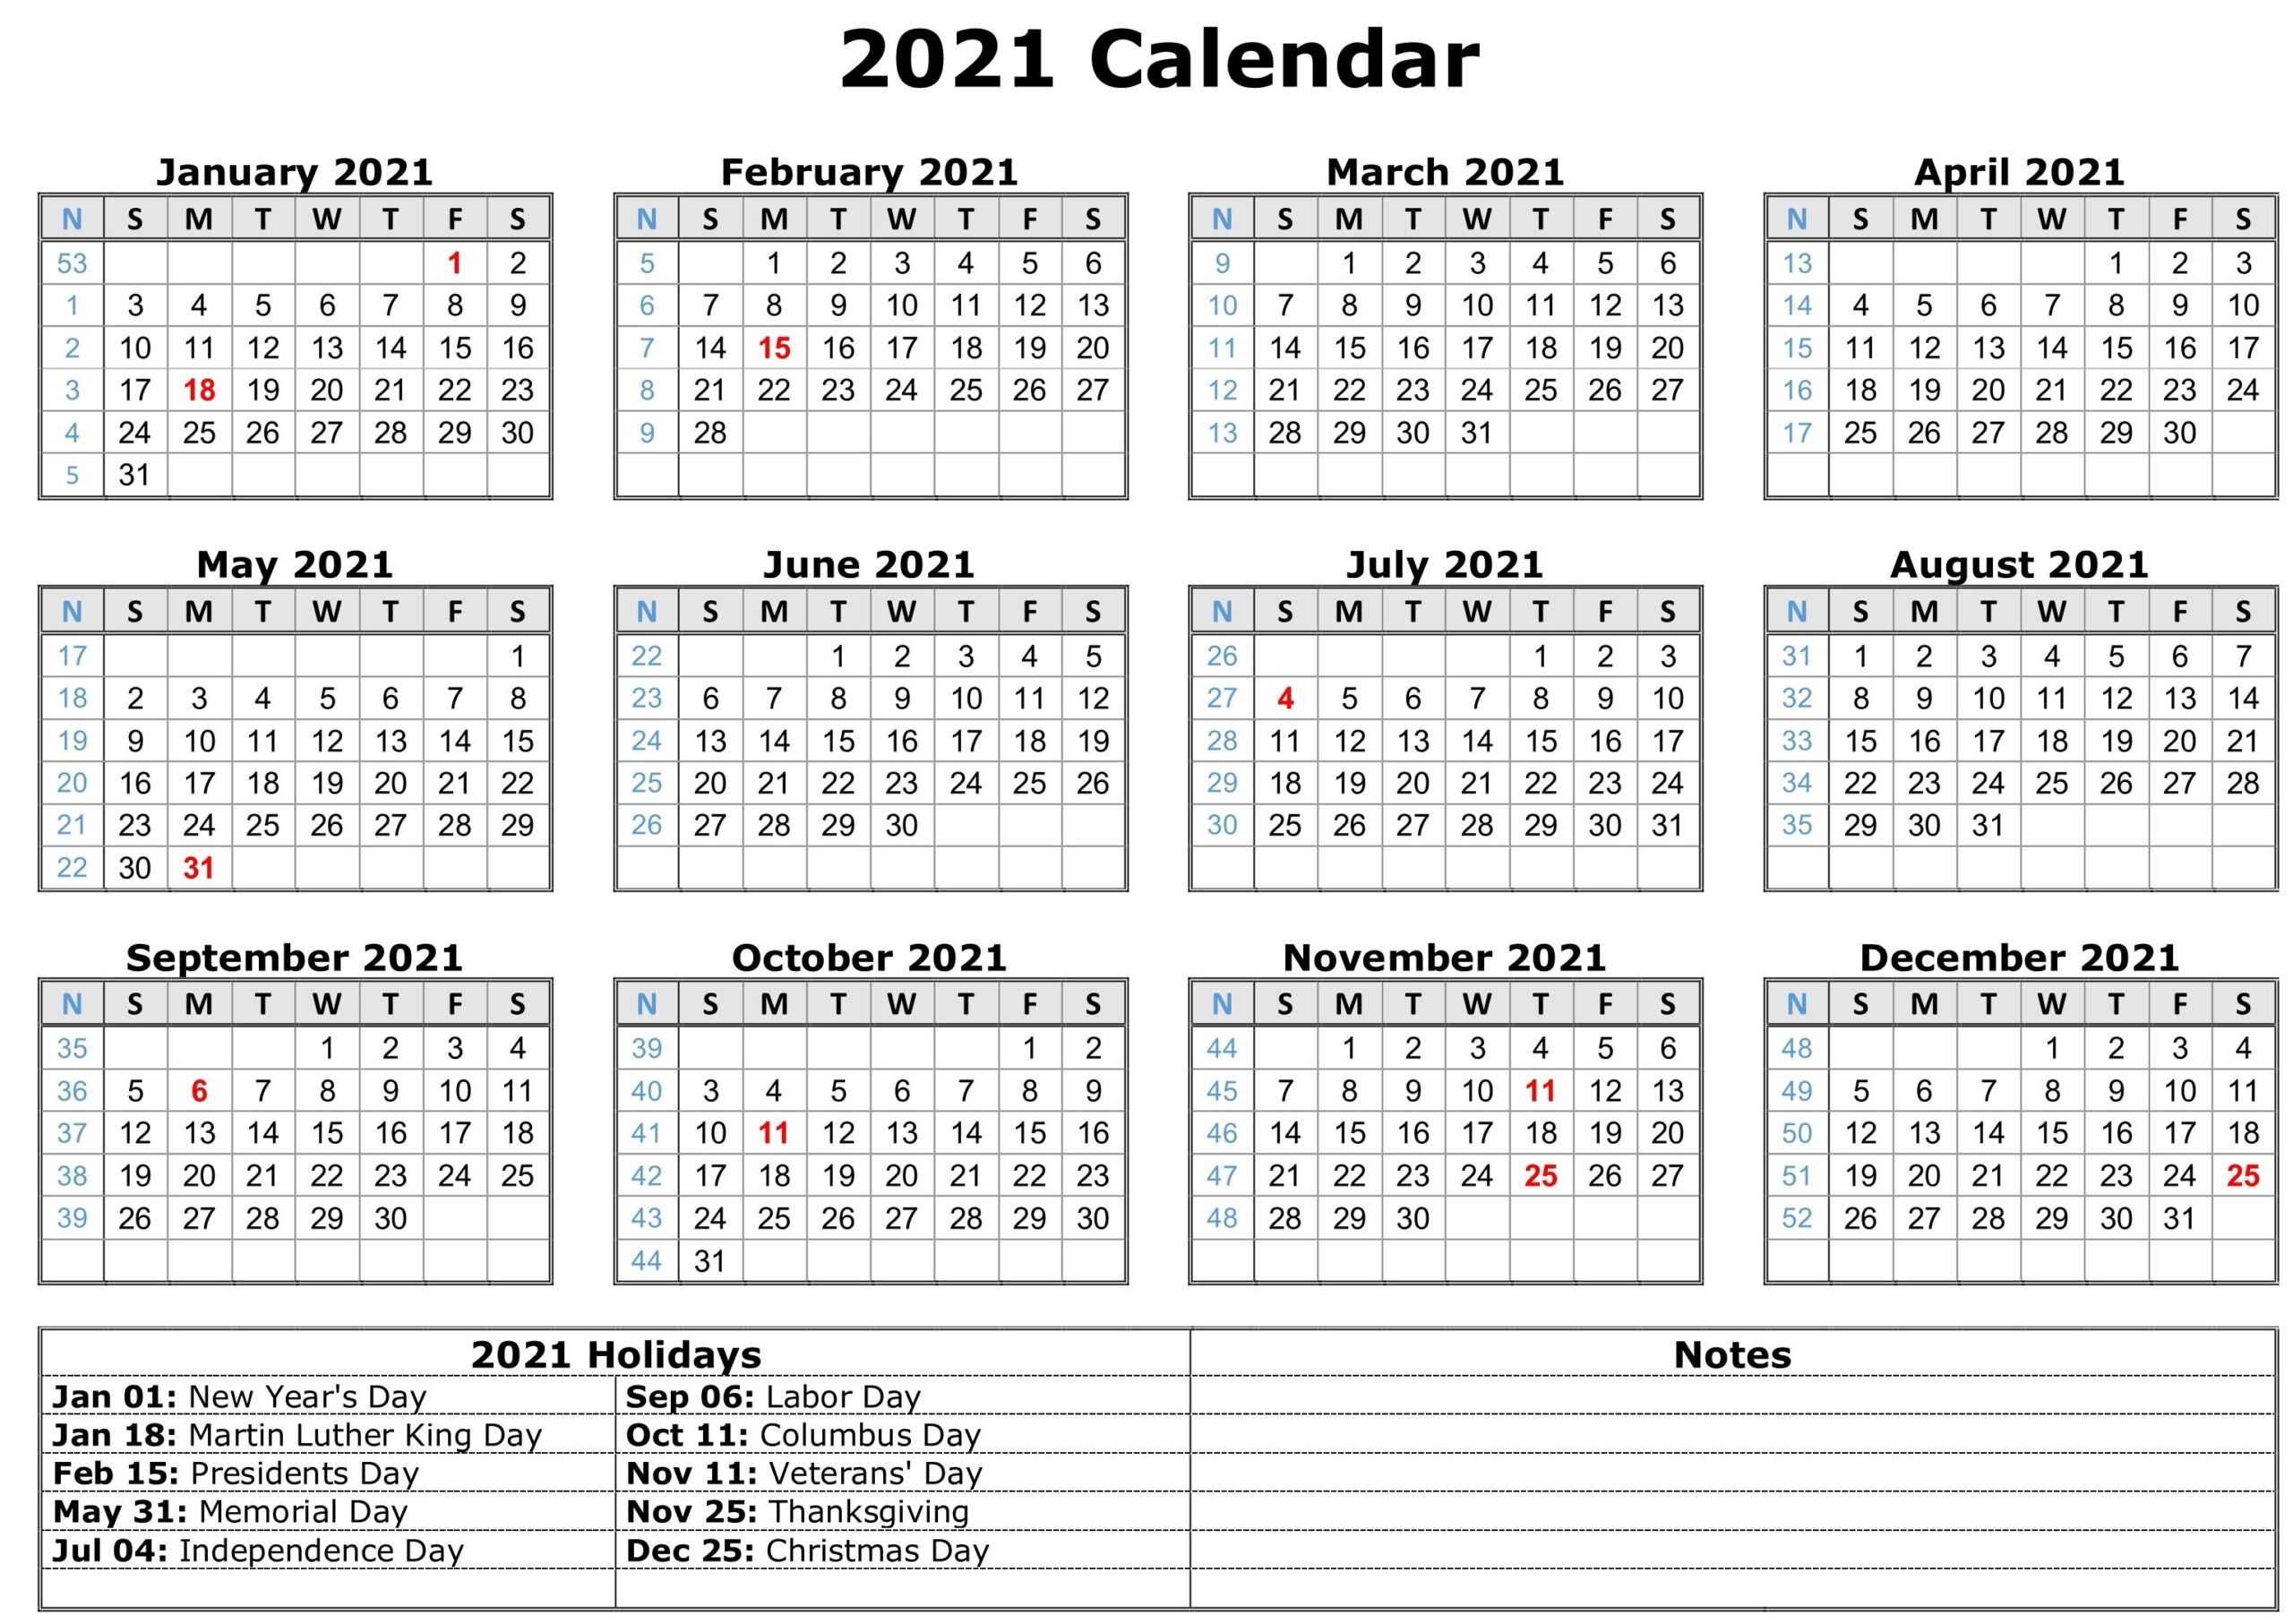 2021 Calendar With Holidays | Free Calendar Template within Print Free 2021 Calendar Without Downloading